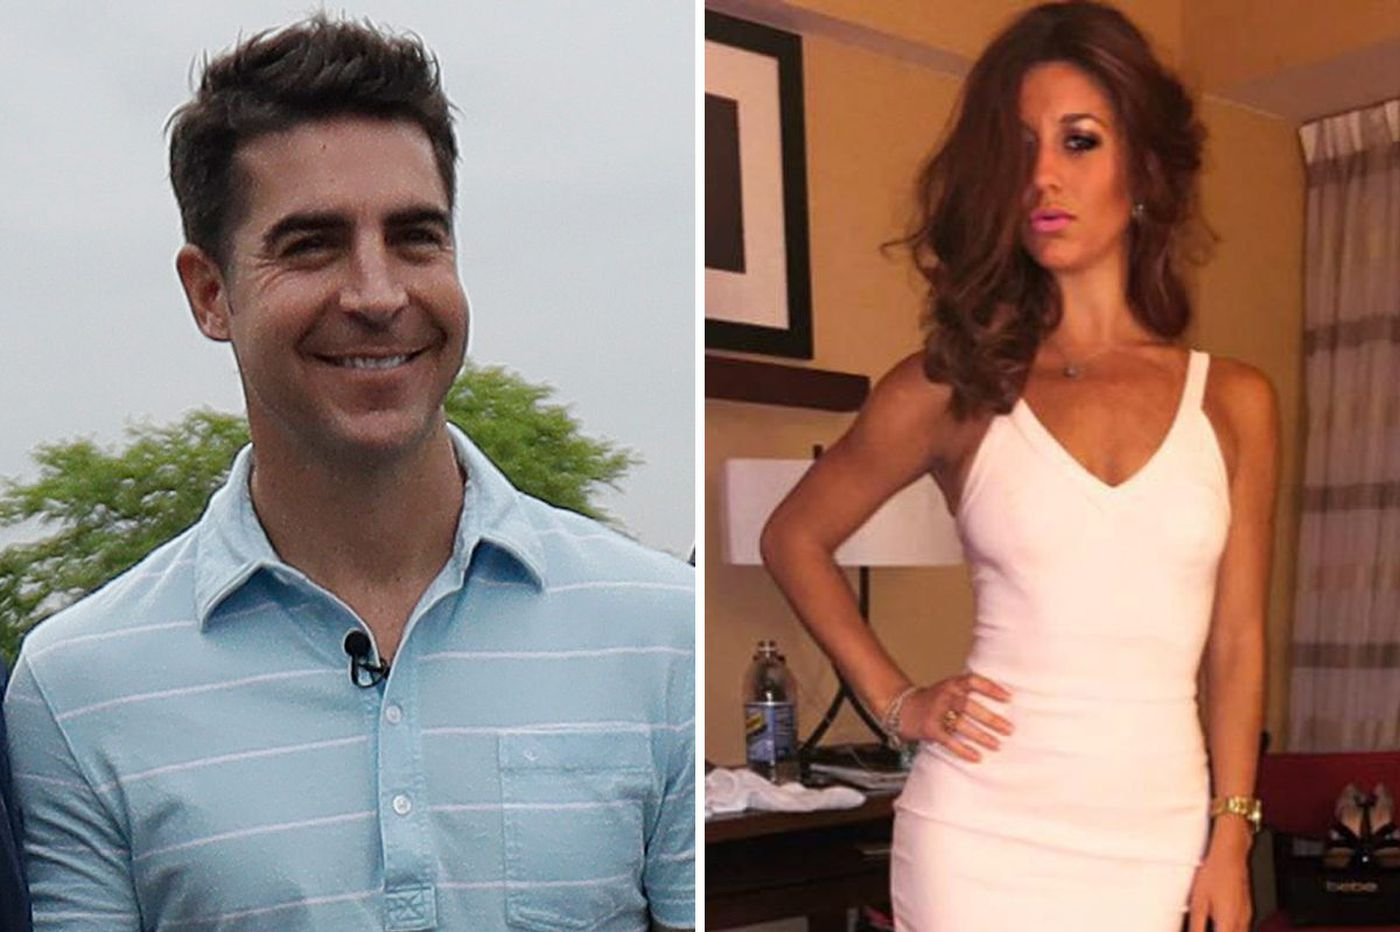 Fox News staffer reassigned after relationship with host Jesse Watters